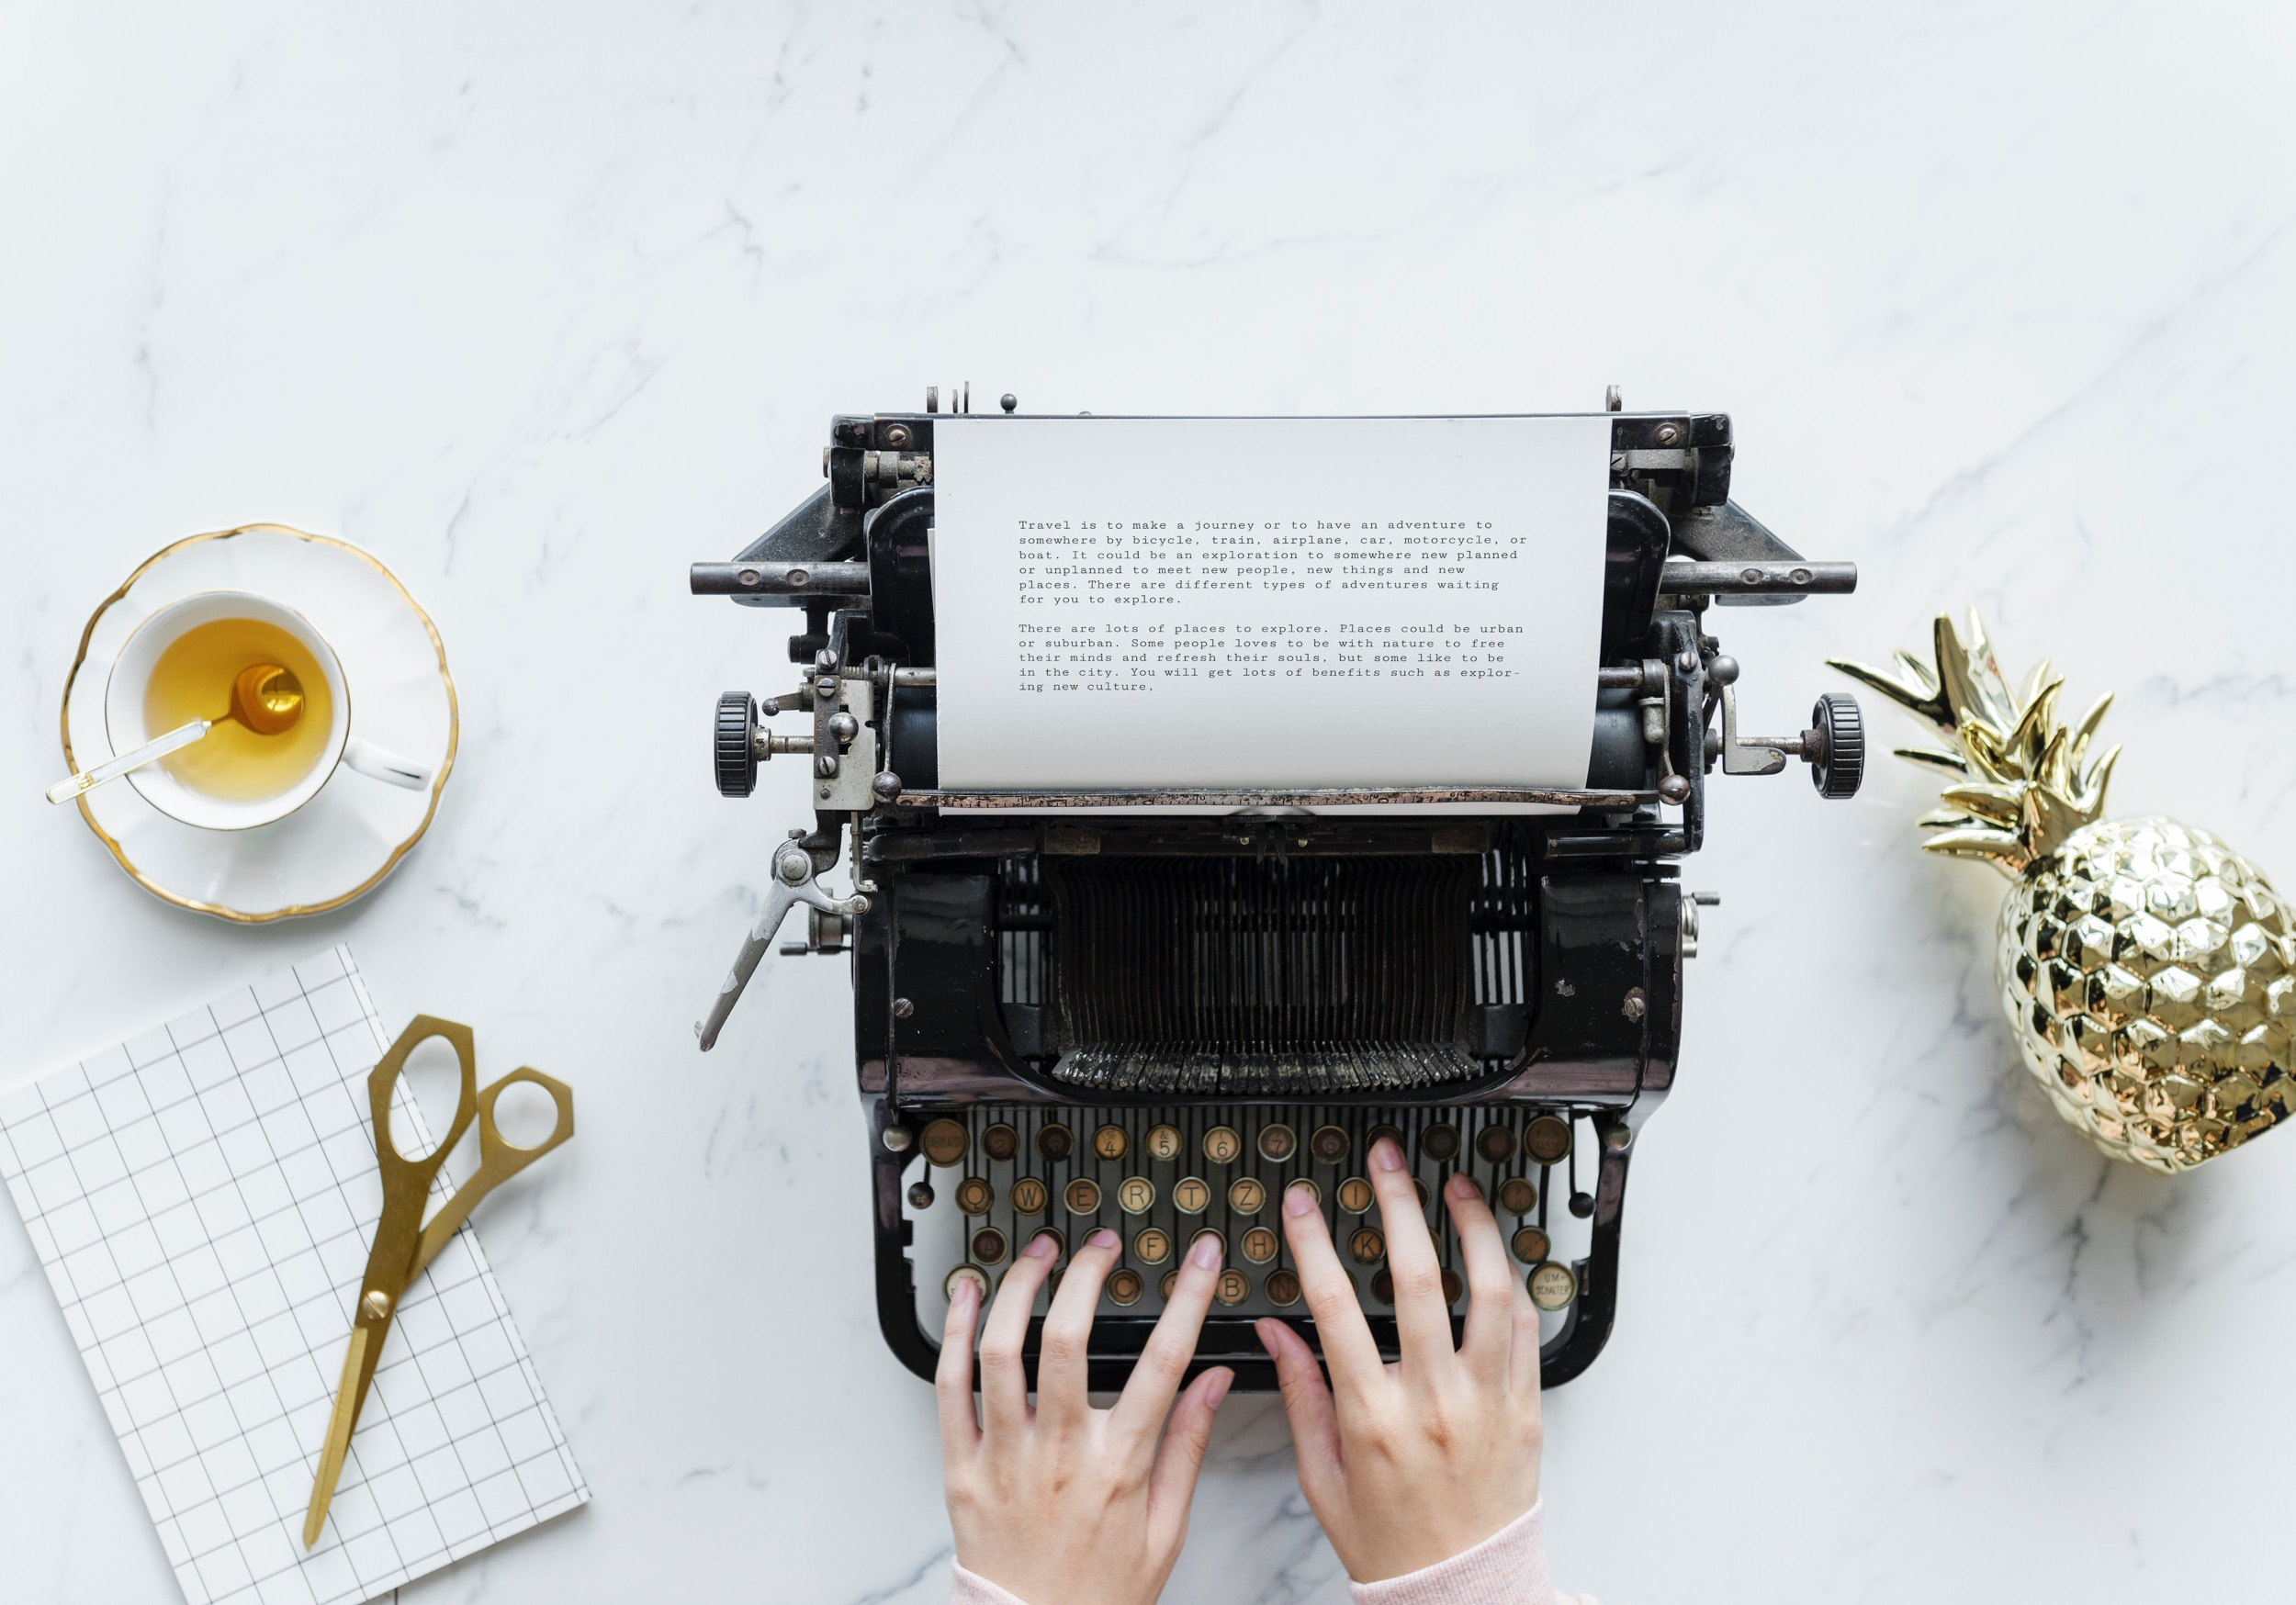 Ramp up your writing by going to a writer's conference in your area.